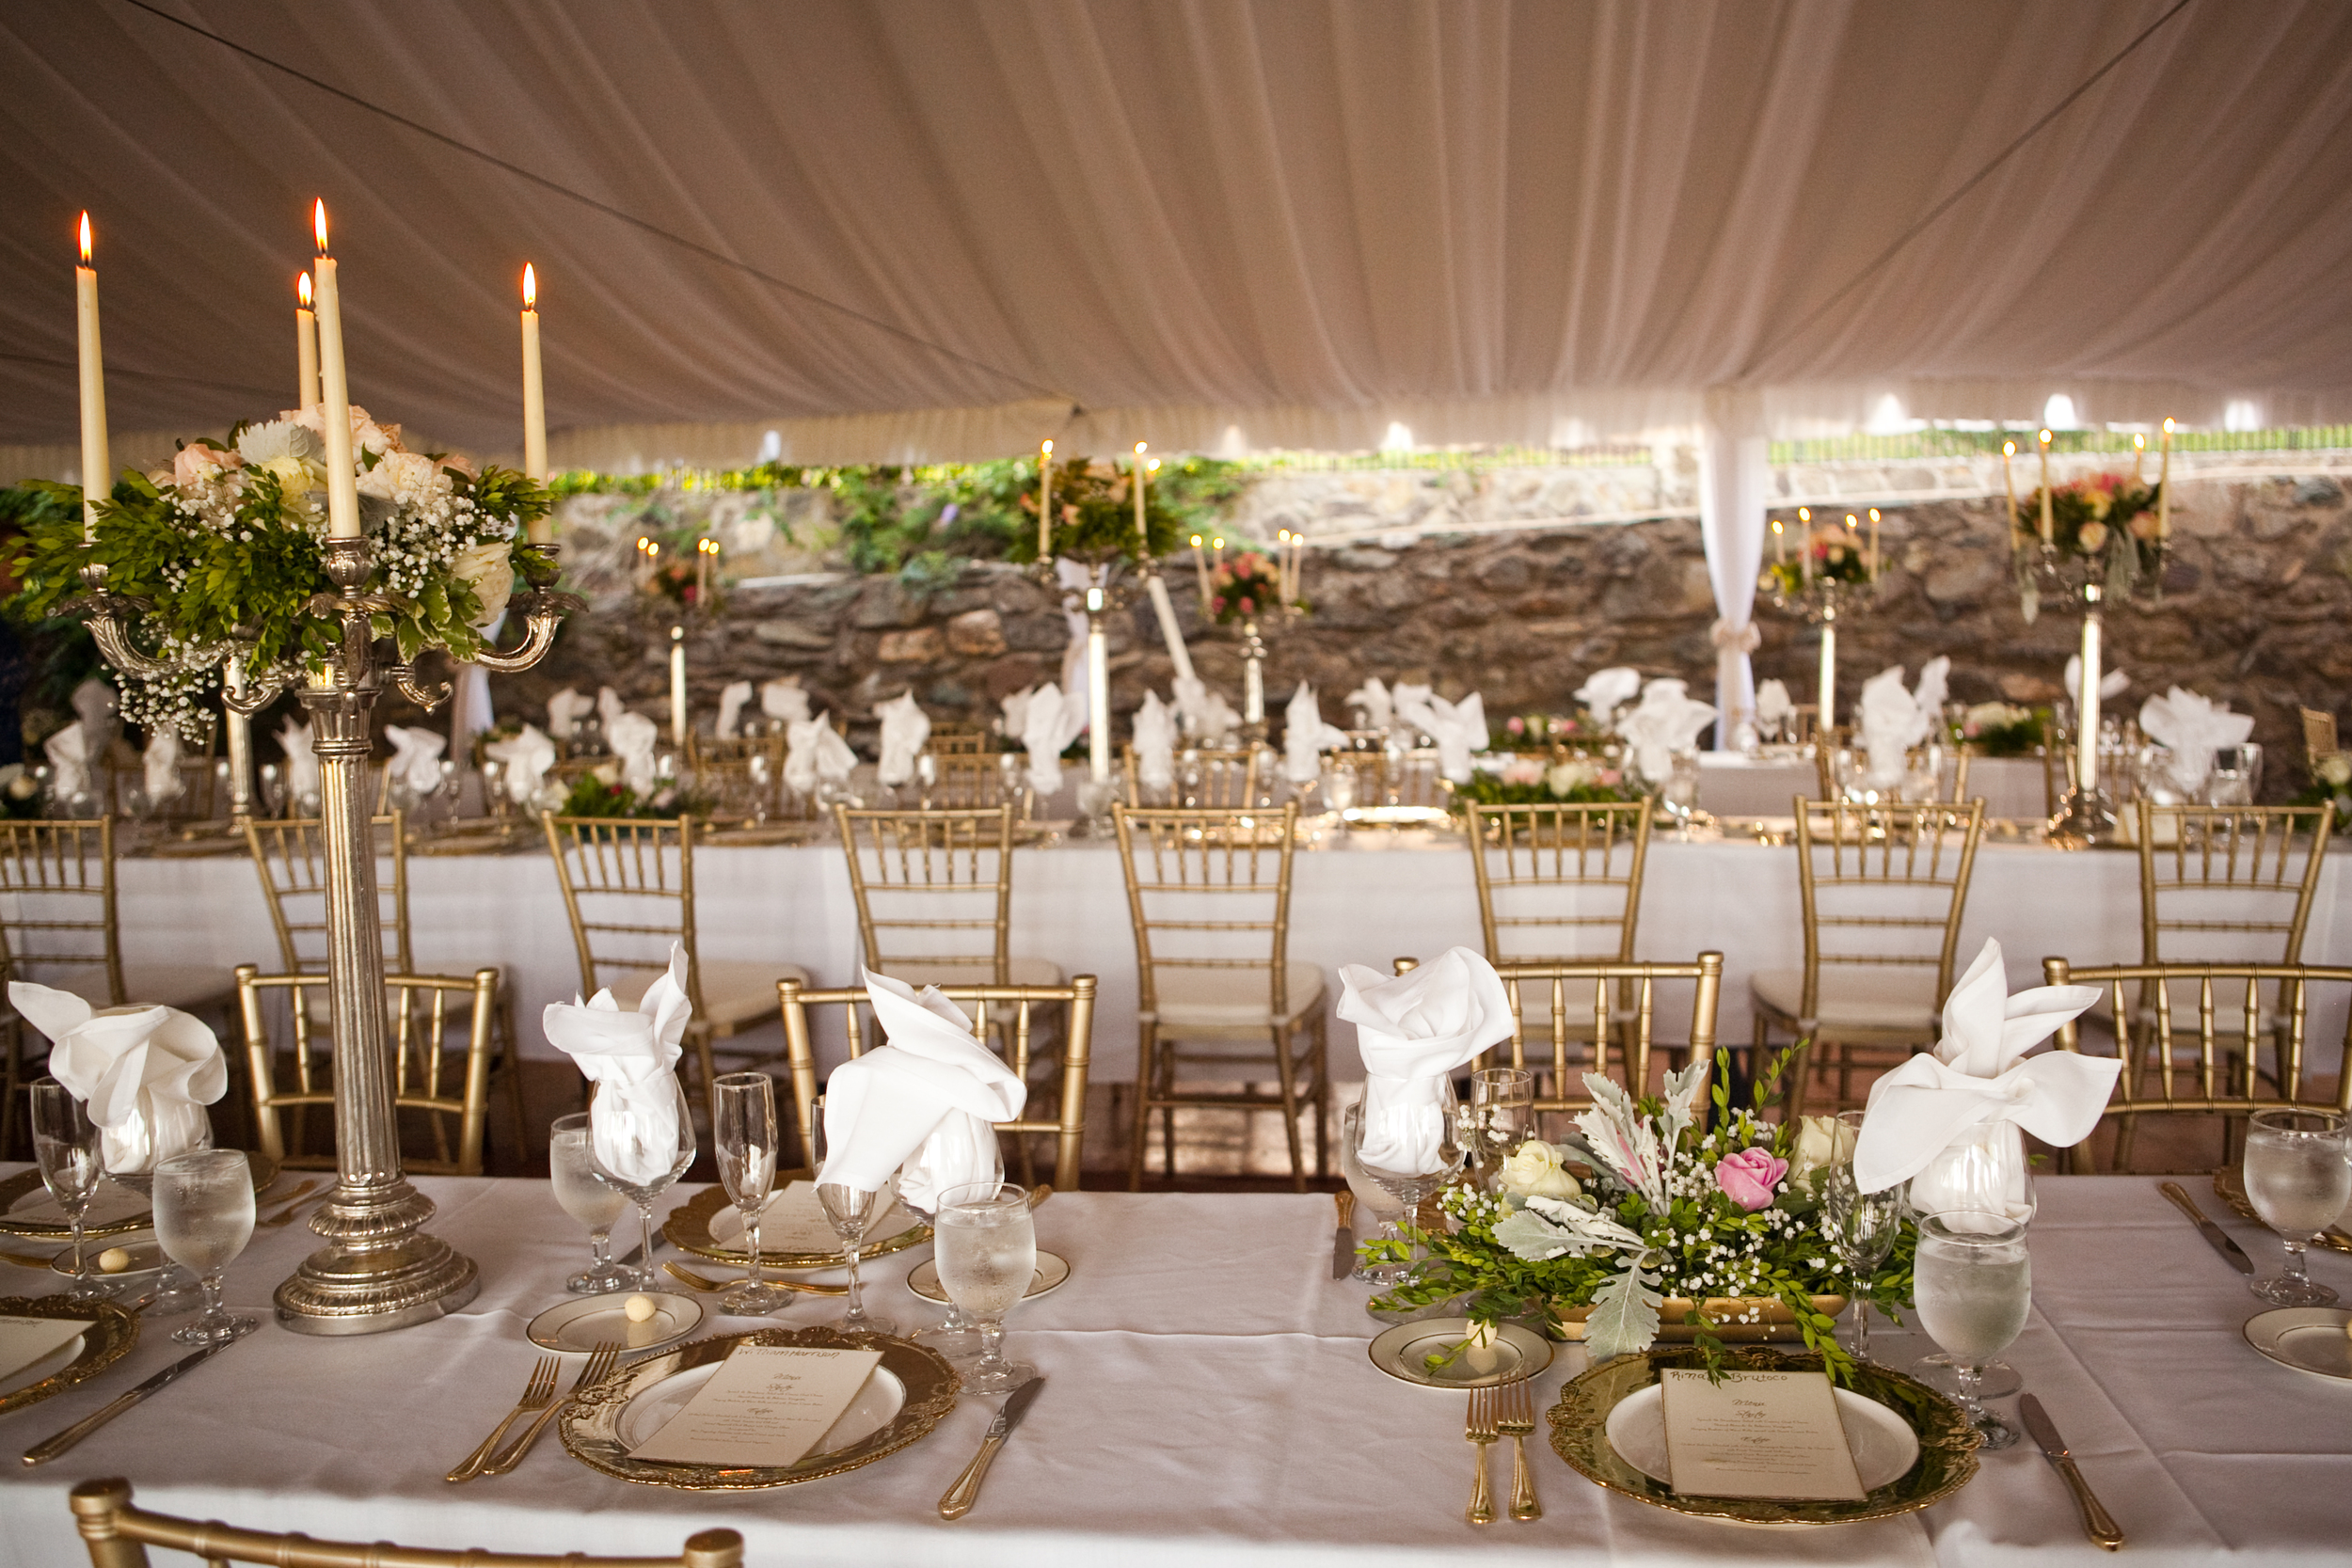 200 + Person Tent, with Wine Country view, attached to the Manor House.